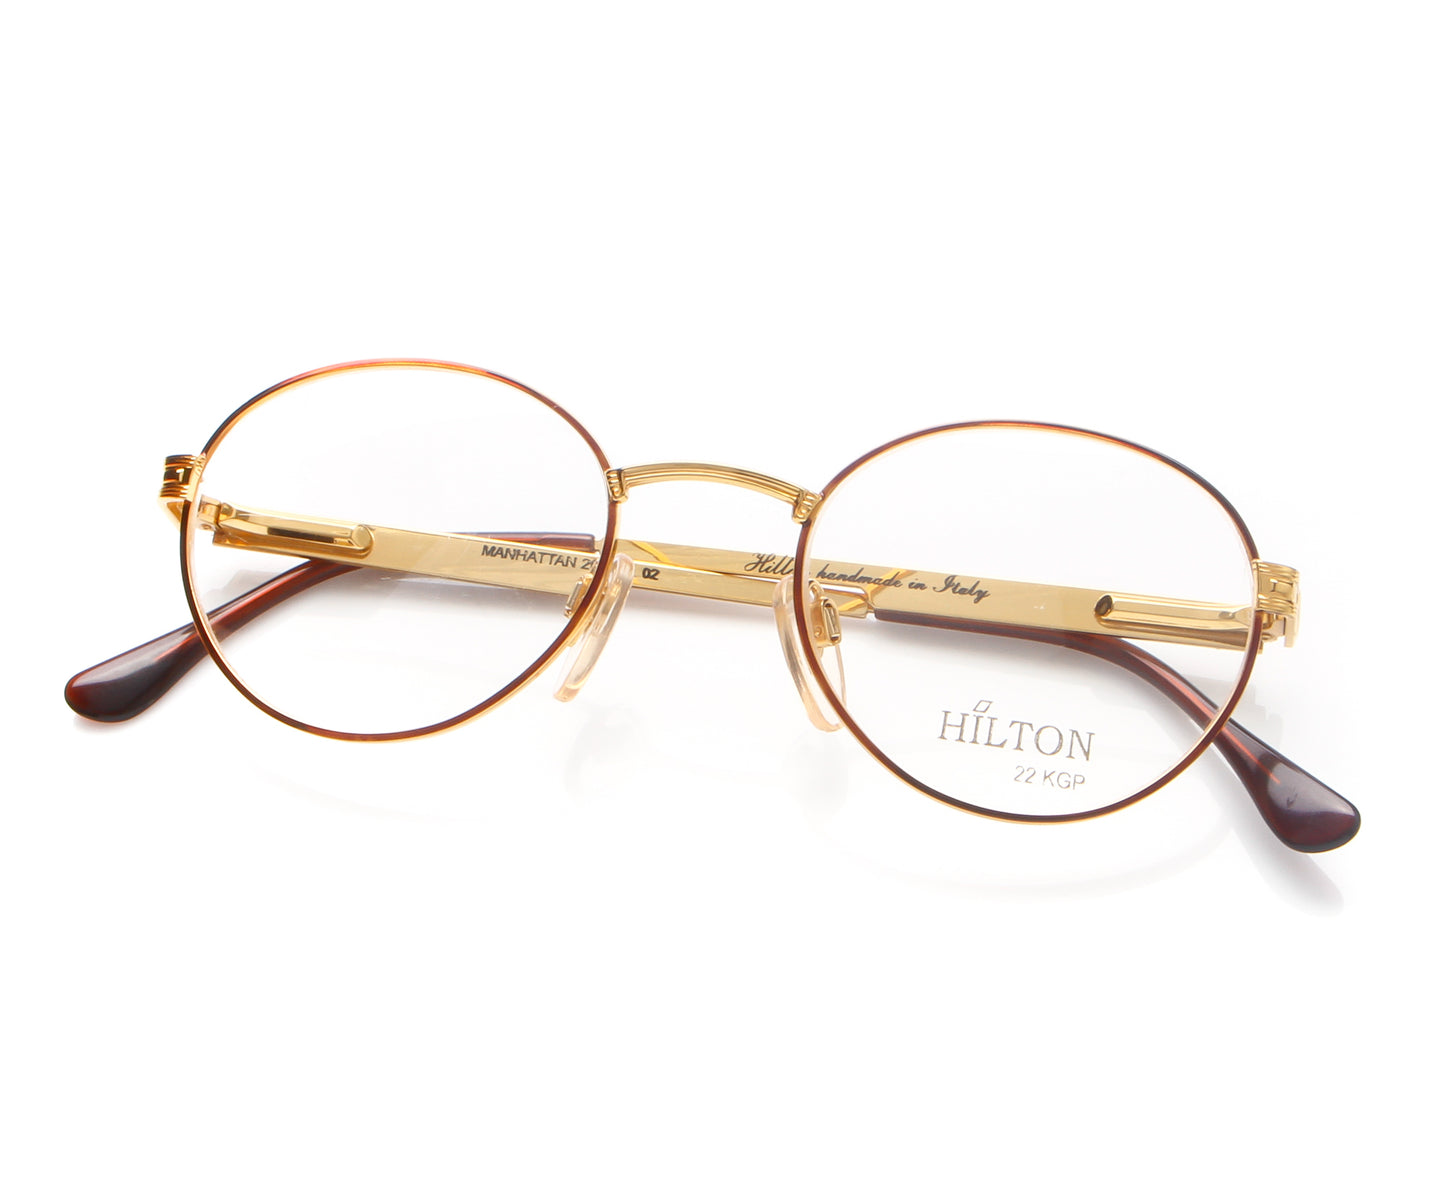 Vintage Hilton Manhattan 205 02 Thumb, Hilton , glasses frames, eyeglasses online, eyeglass frames, mens glasses, womens glasses, buy glasses online, designer eyeglasses, vintage sunglasses, retro sunglasses, vintage glasses, sunglass, eyeglass, glasses, lens, vintage frames company, vf